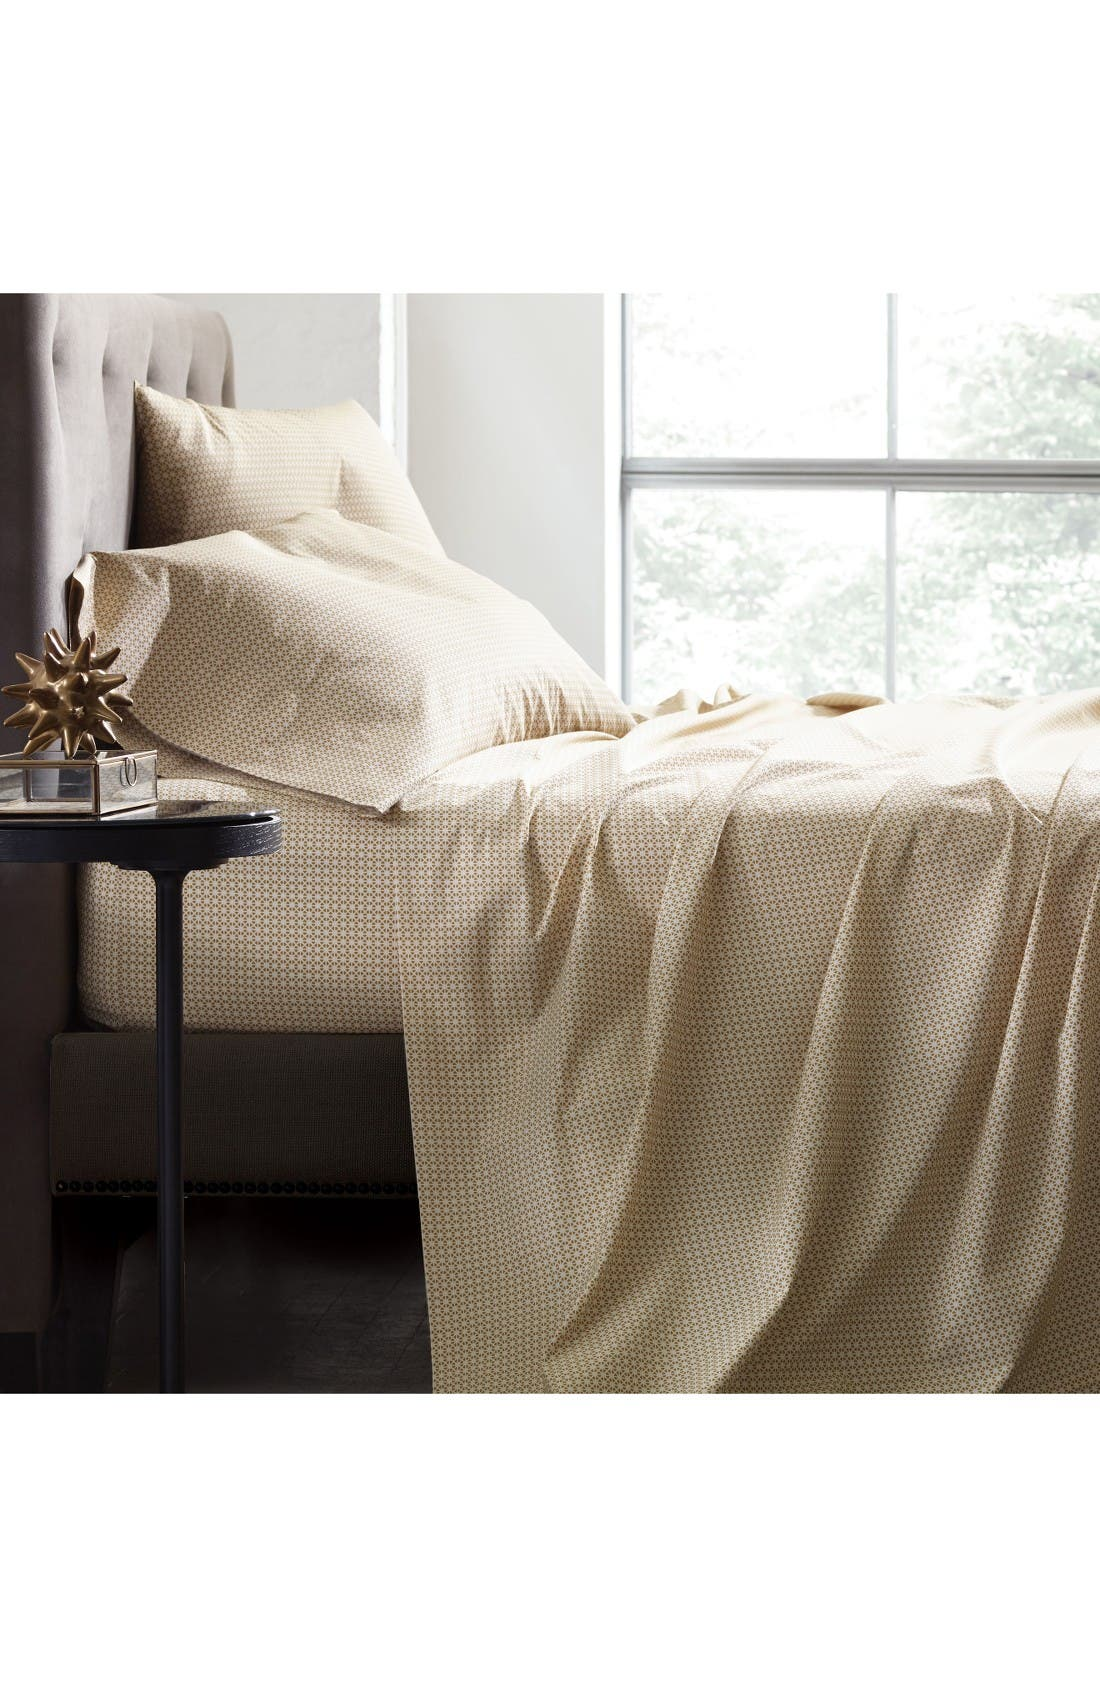 Main Image - DwellStudio Fez Ochre 200 Thread Count Sheet Set